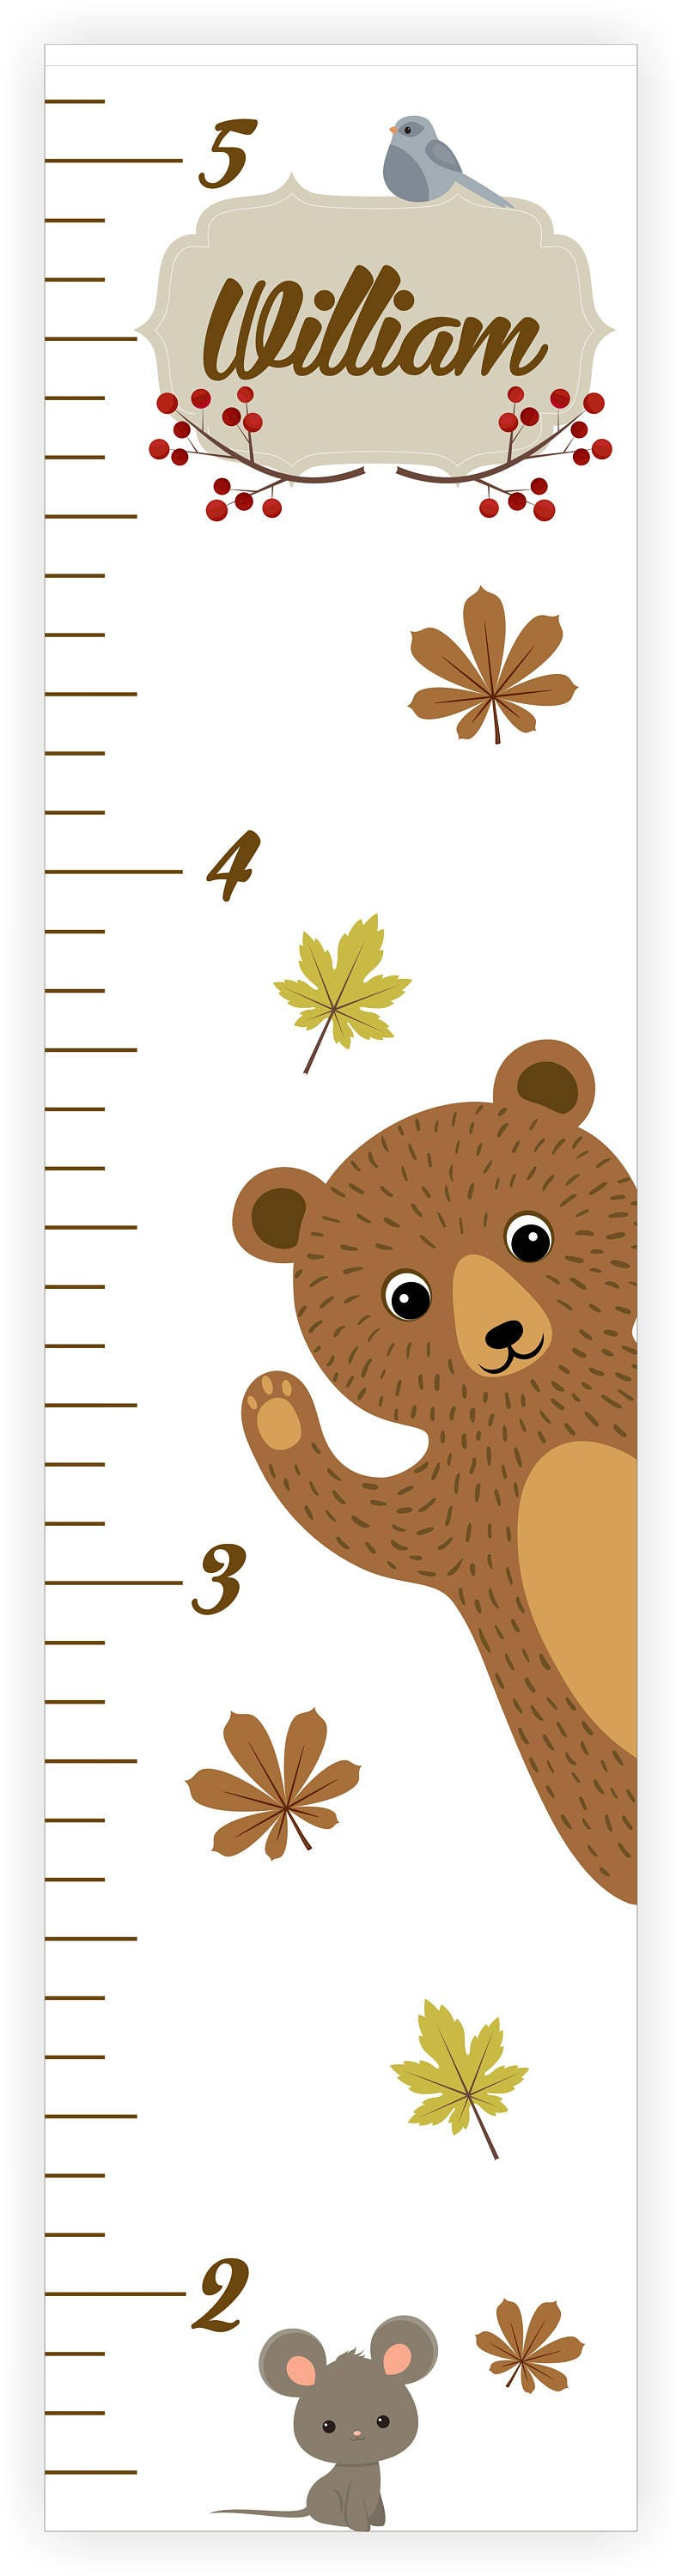 Customizable childrens growth chart personalized growth chart customizable childrens growth chart personalized growth chart forest animals growth chart kids height ruler forest animals nvjuhfo Image collections